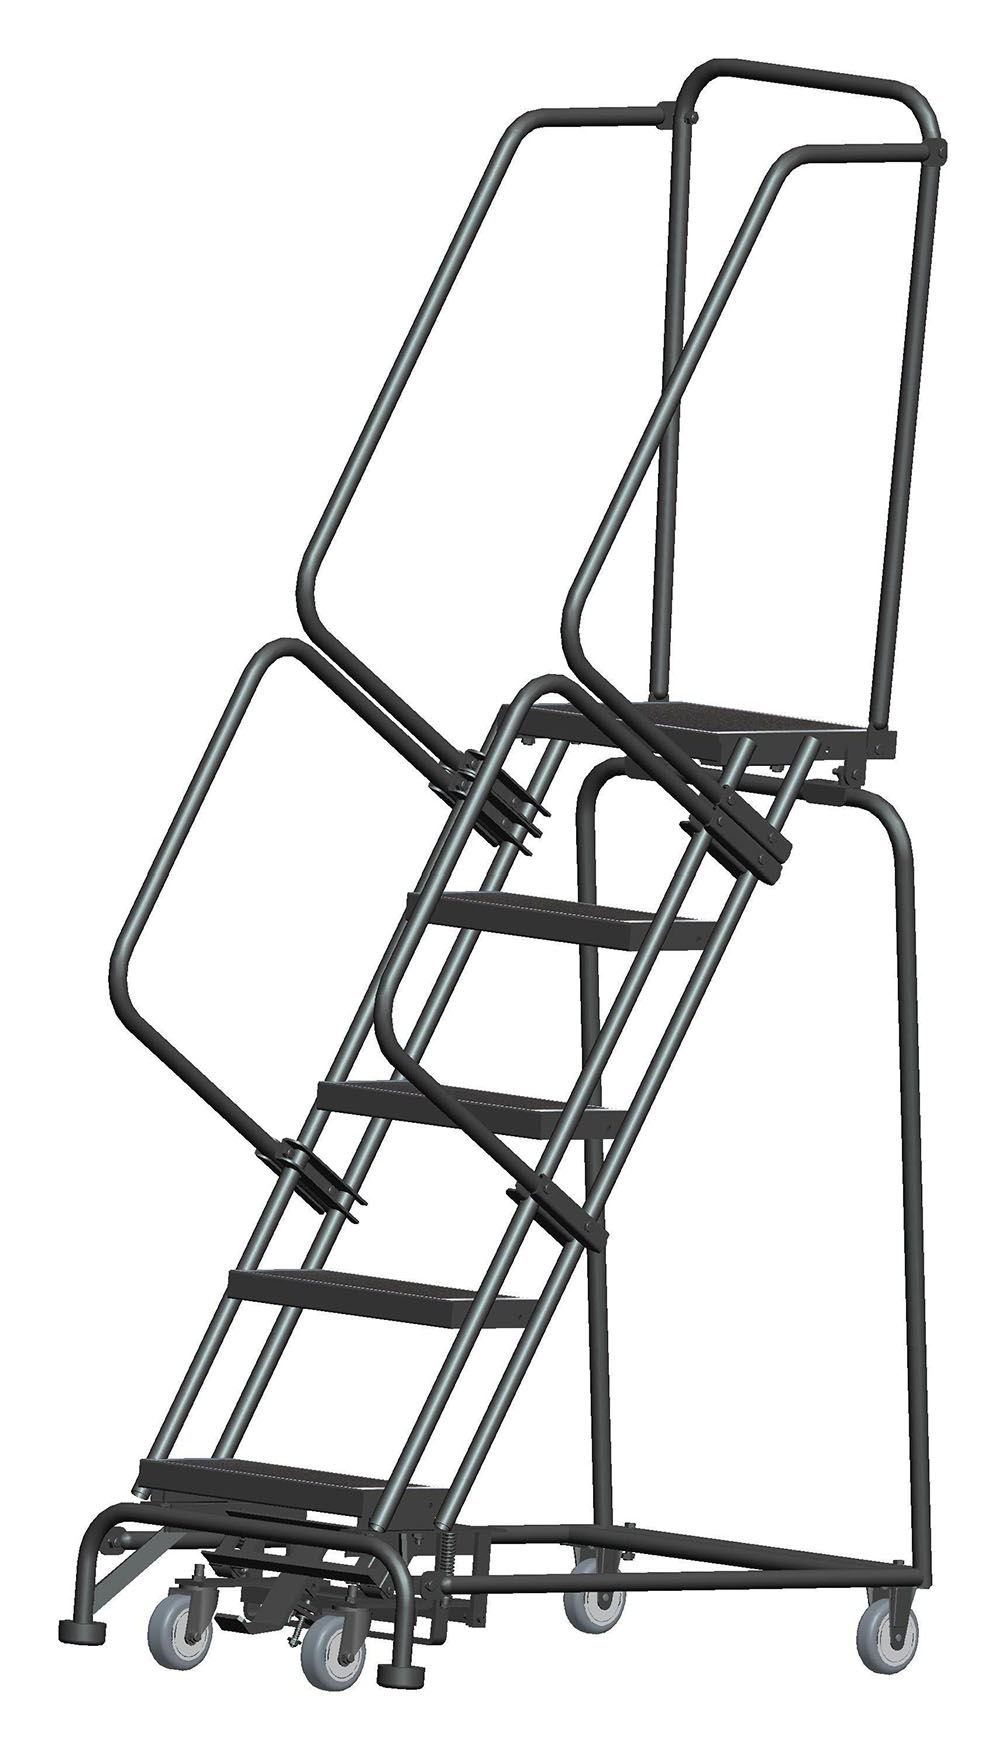 Weight Actuated Lockstep Ladders Ballymore